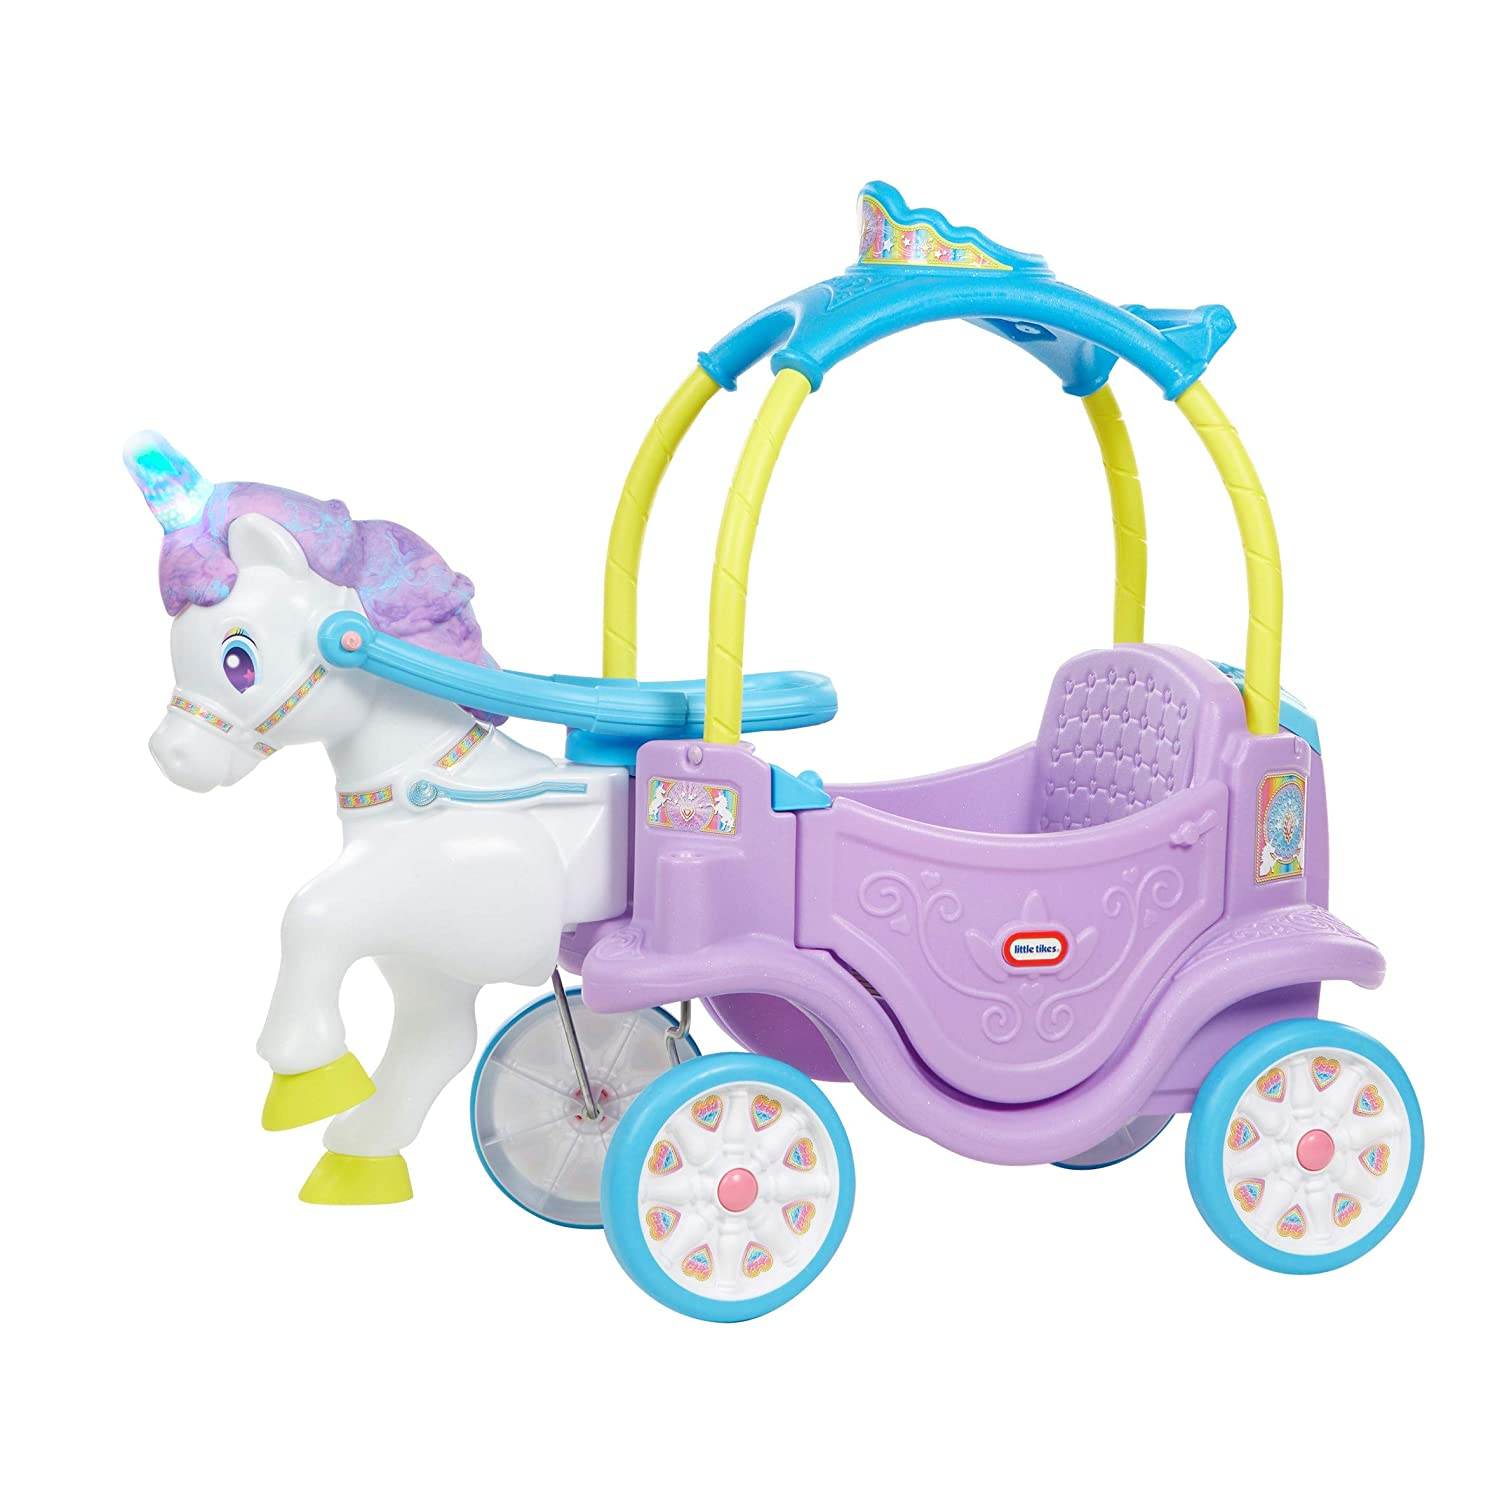 23 Best Unicorn Toys and Gifts for Girls Reviews of 2021 40